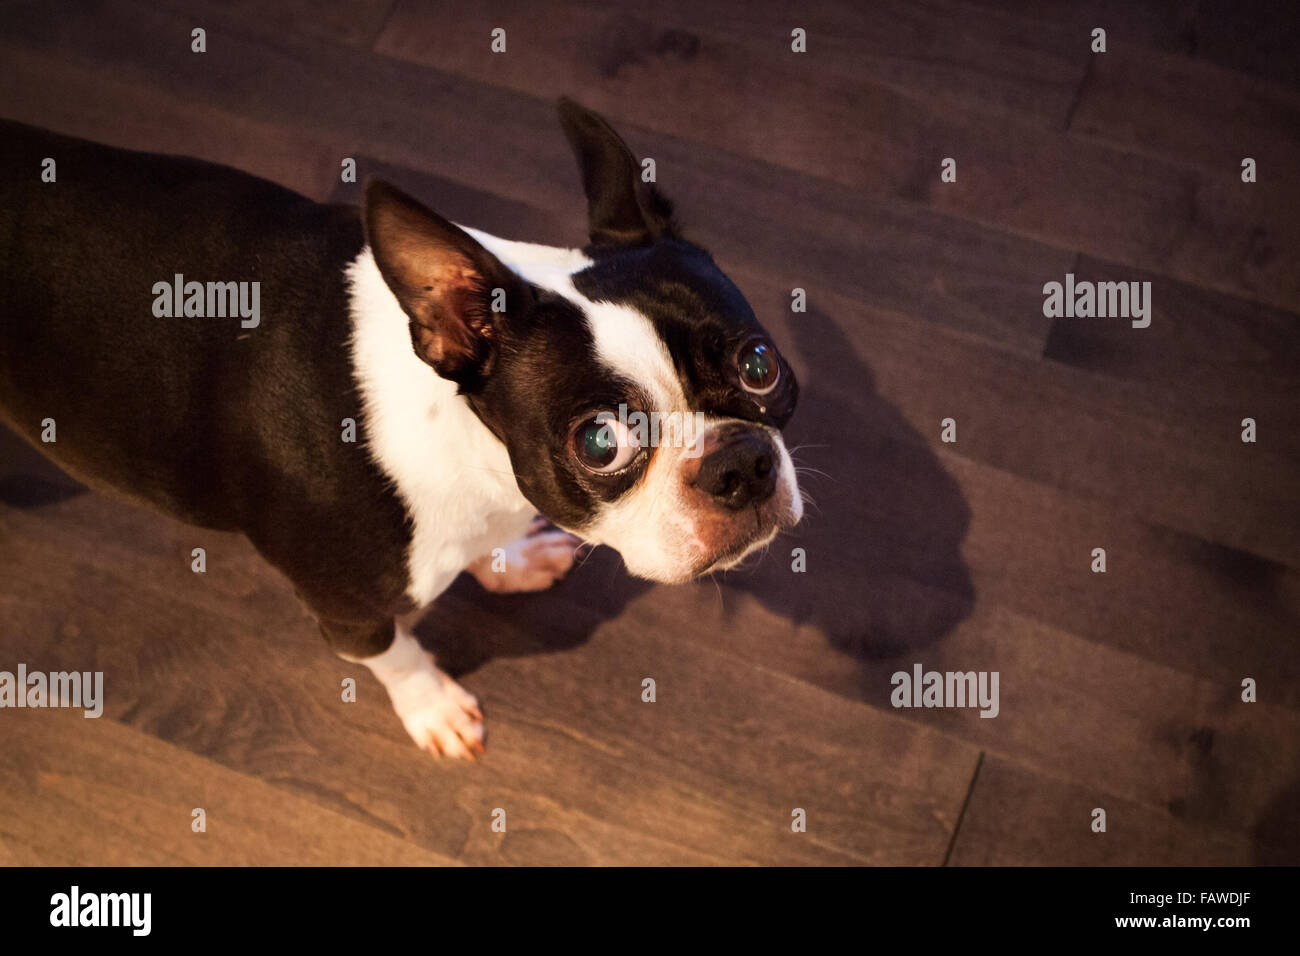 An unsure Boston Terrier. - Stock Image